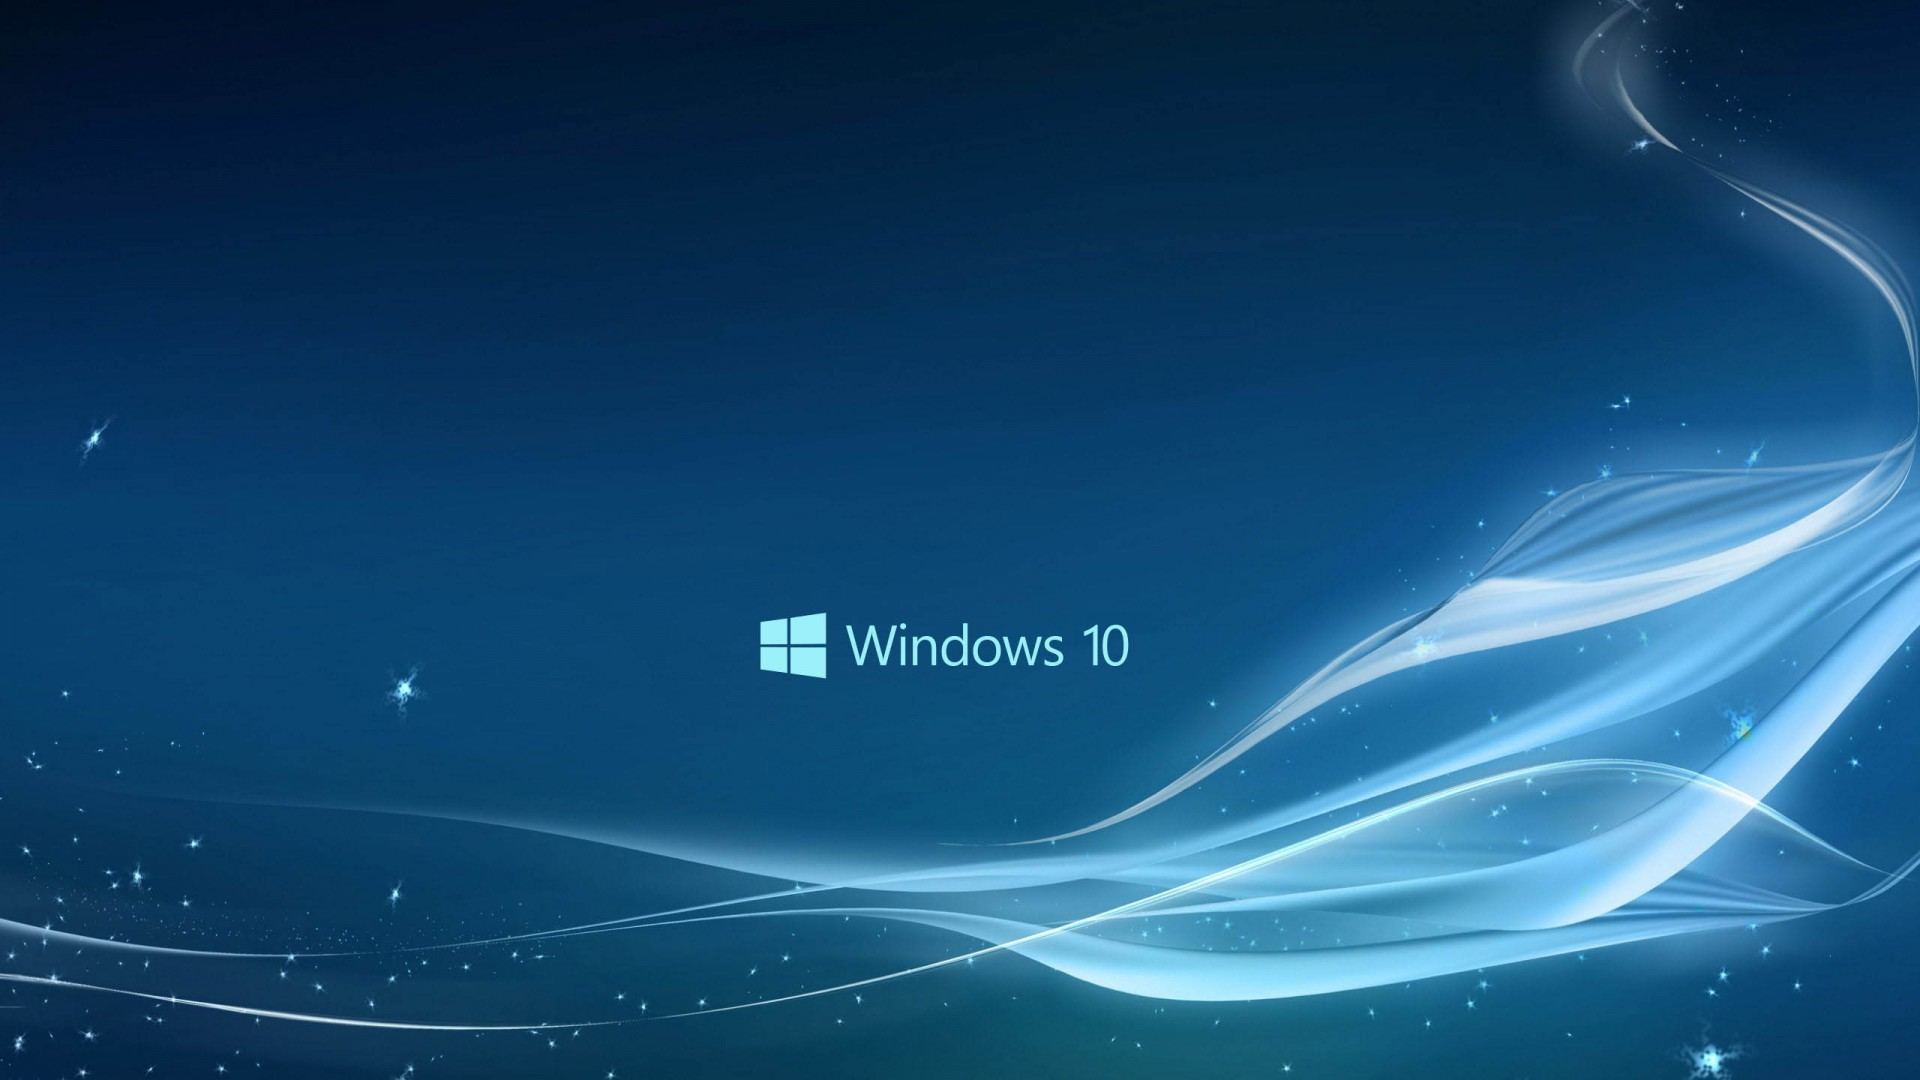 1920x1080 Windows 10 HD wallpaper 2015  (1080p) - Wallpaper - Wallpaper .